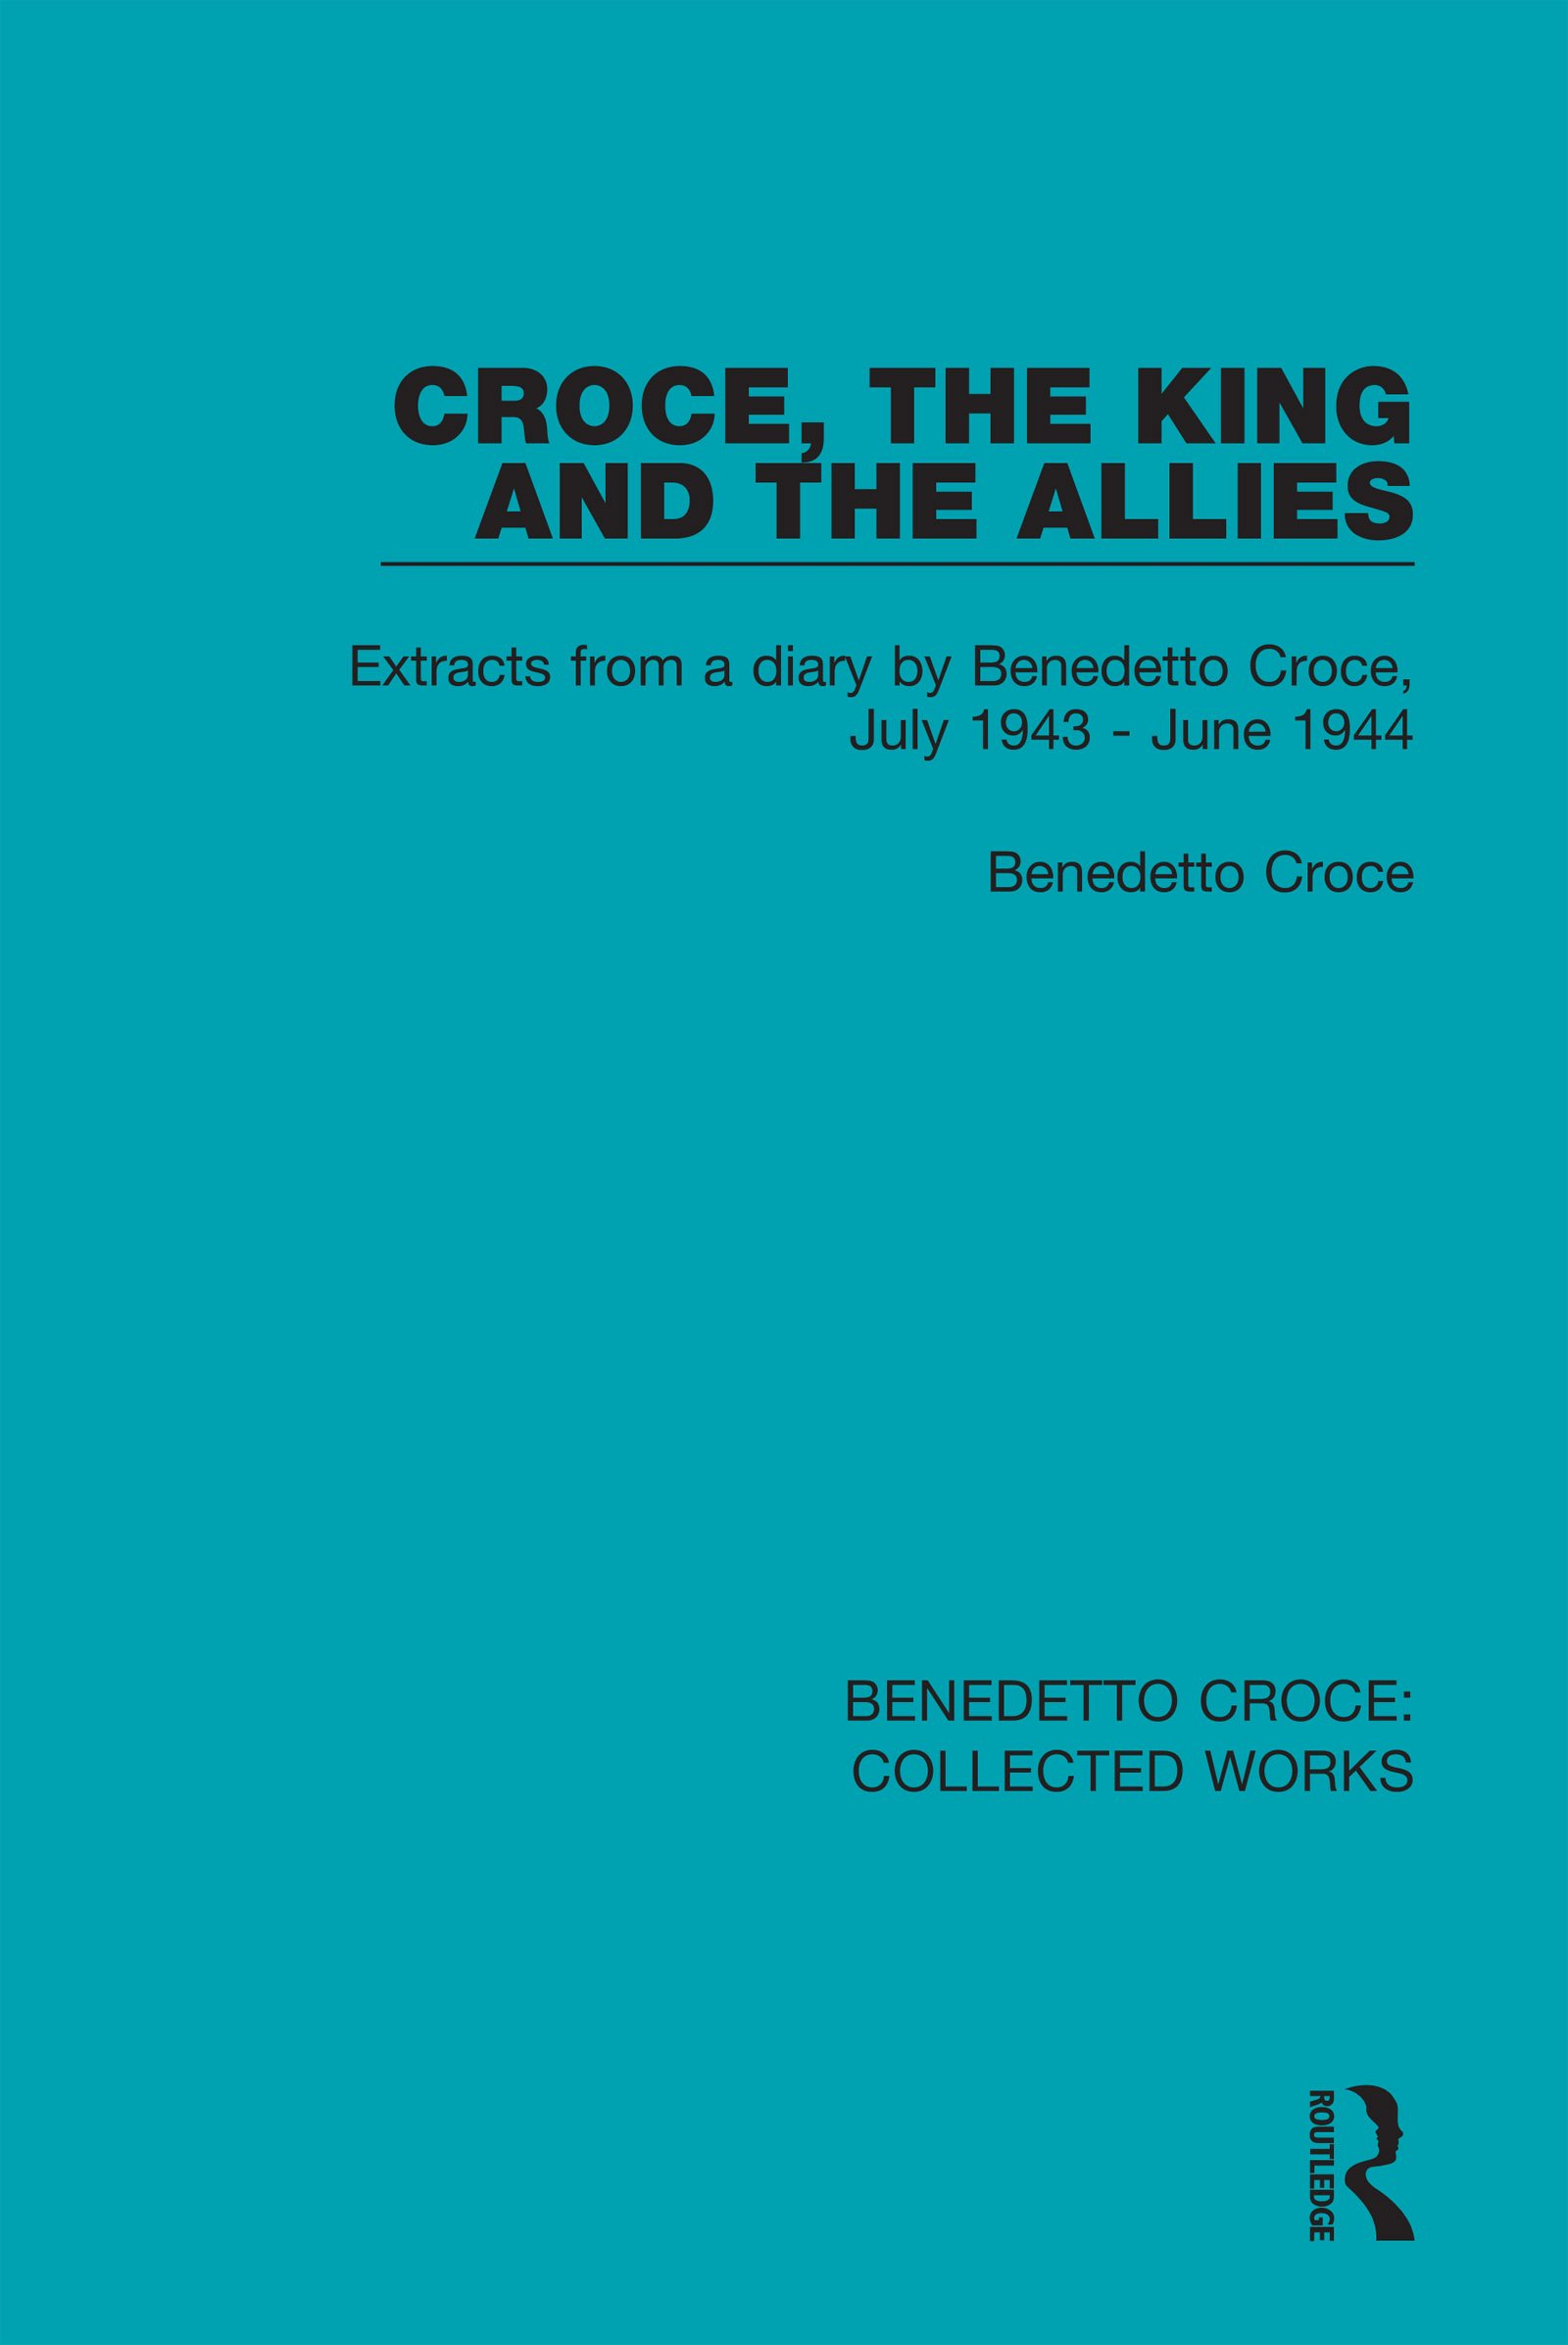 Croce, The King and The Allies